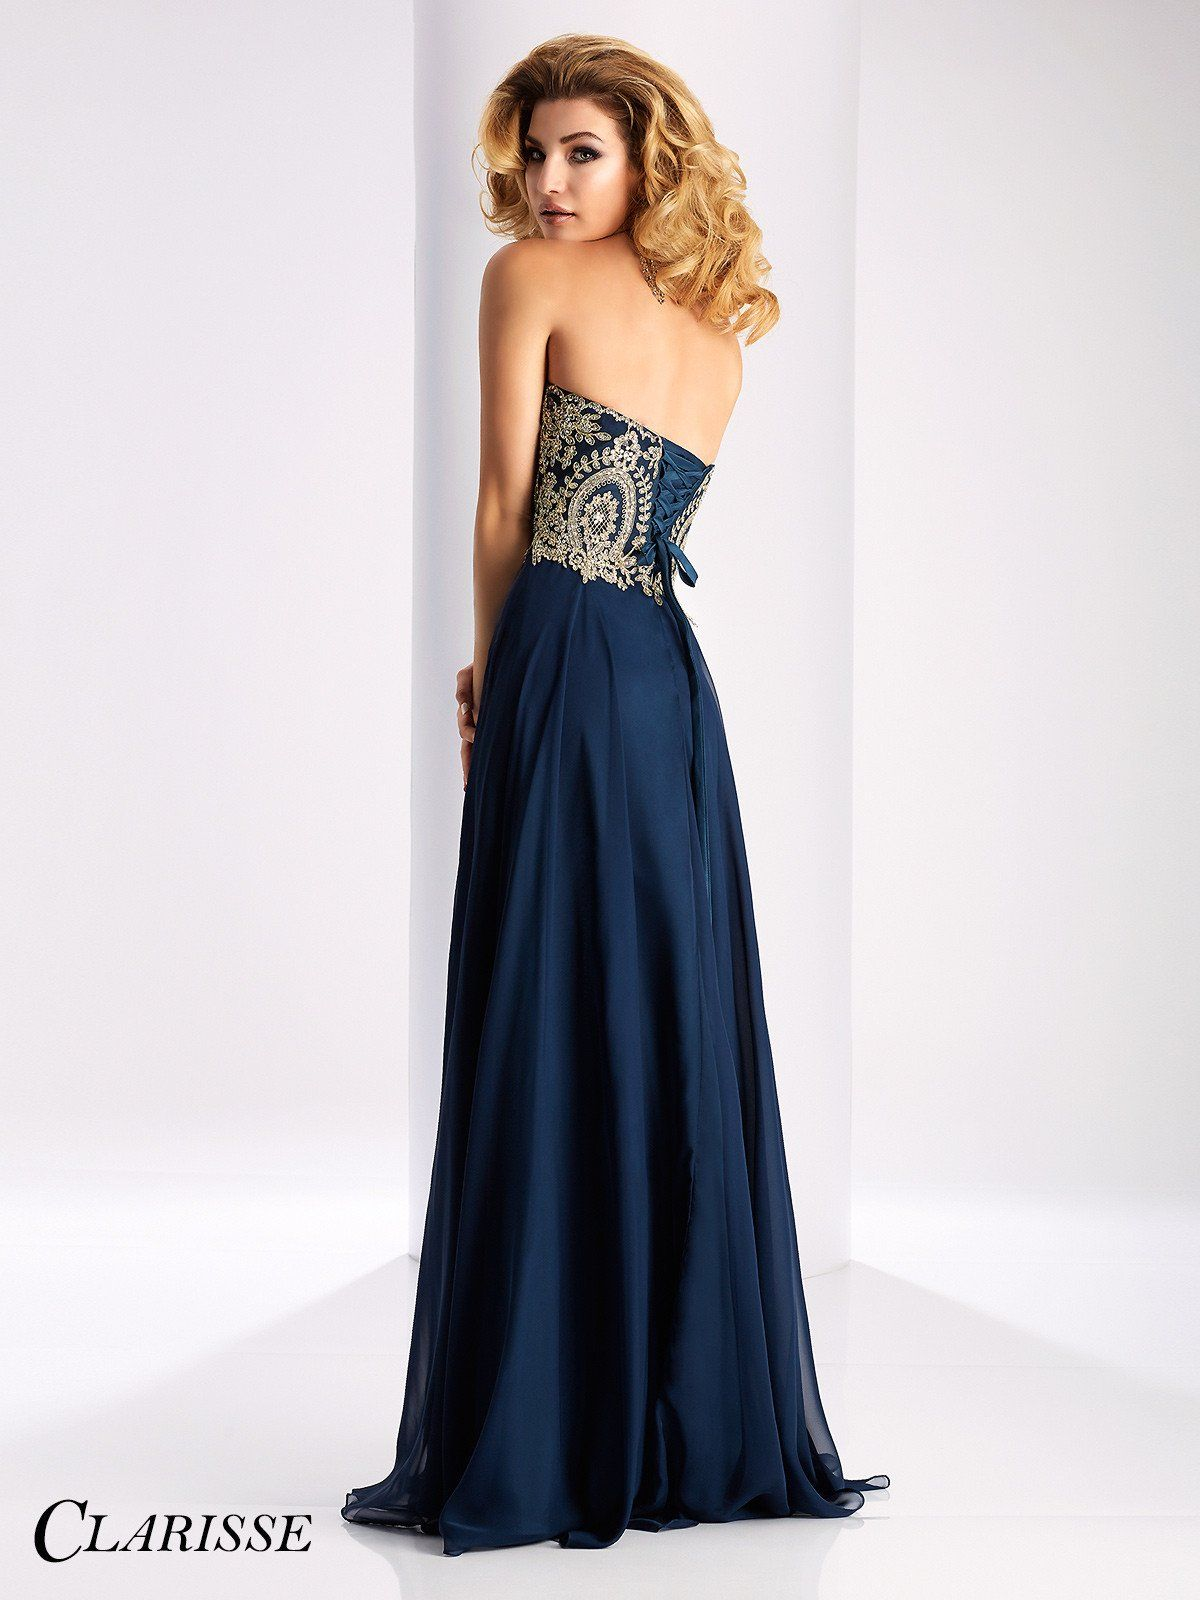 Clarisse prom navy strapless chiffon prom dress products